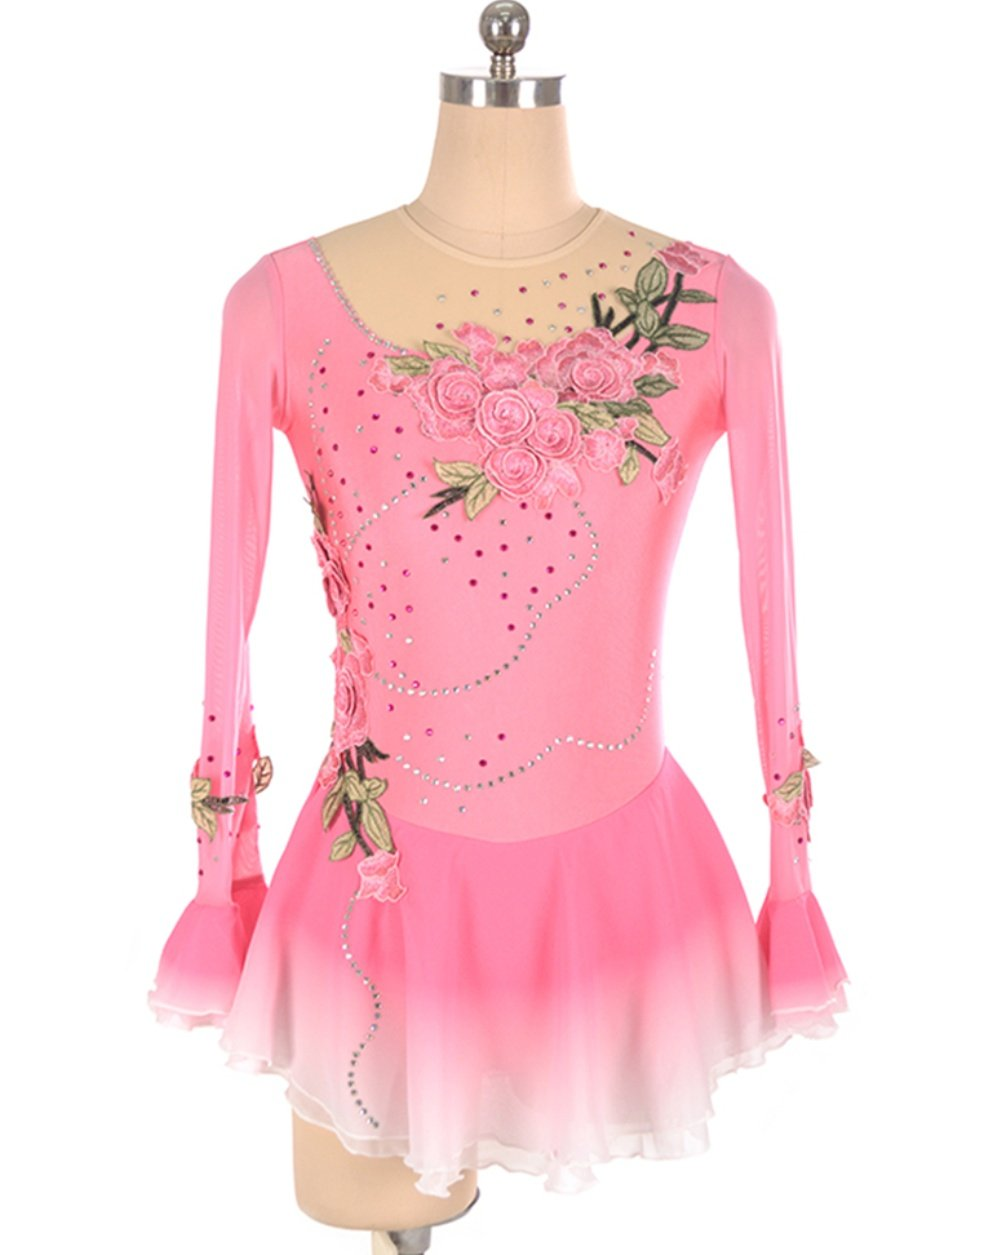 Skating Queen Handmade Ice Skating Dress for Girls Women Figure Skating Competition Costume Skating Dress Appliques Crystals Long Sleeved Pink